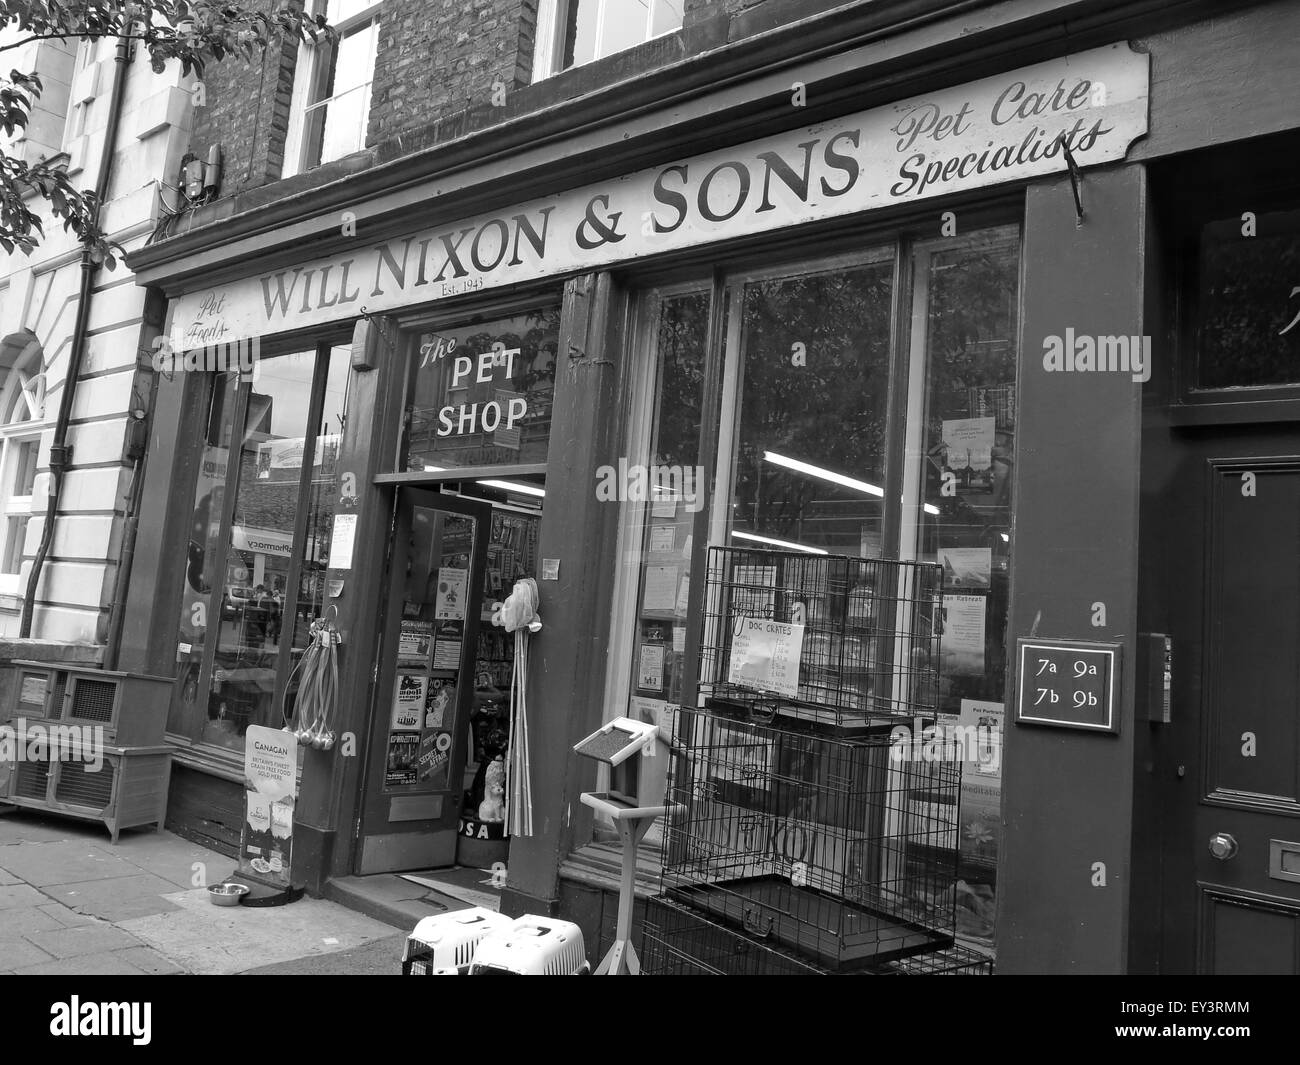 Will Nixon and sons,traditional Carlisle pet shop,Cumbria,England,UK,Black/White - Stock Image